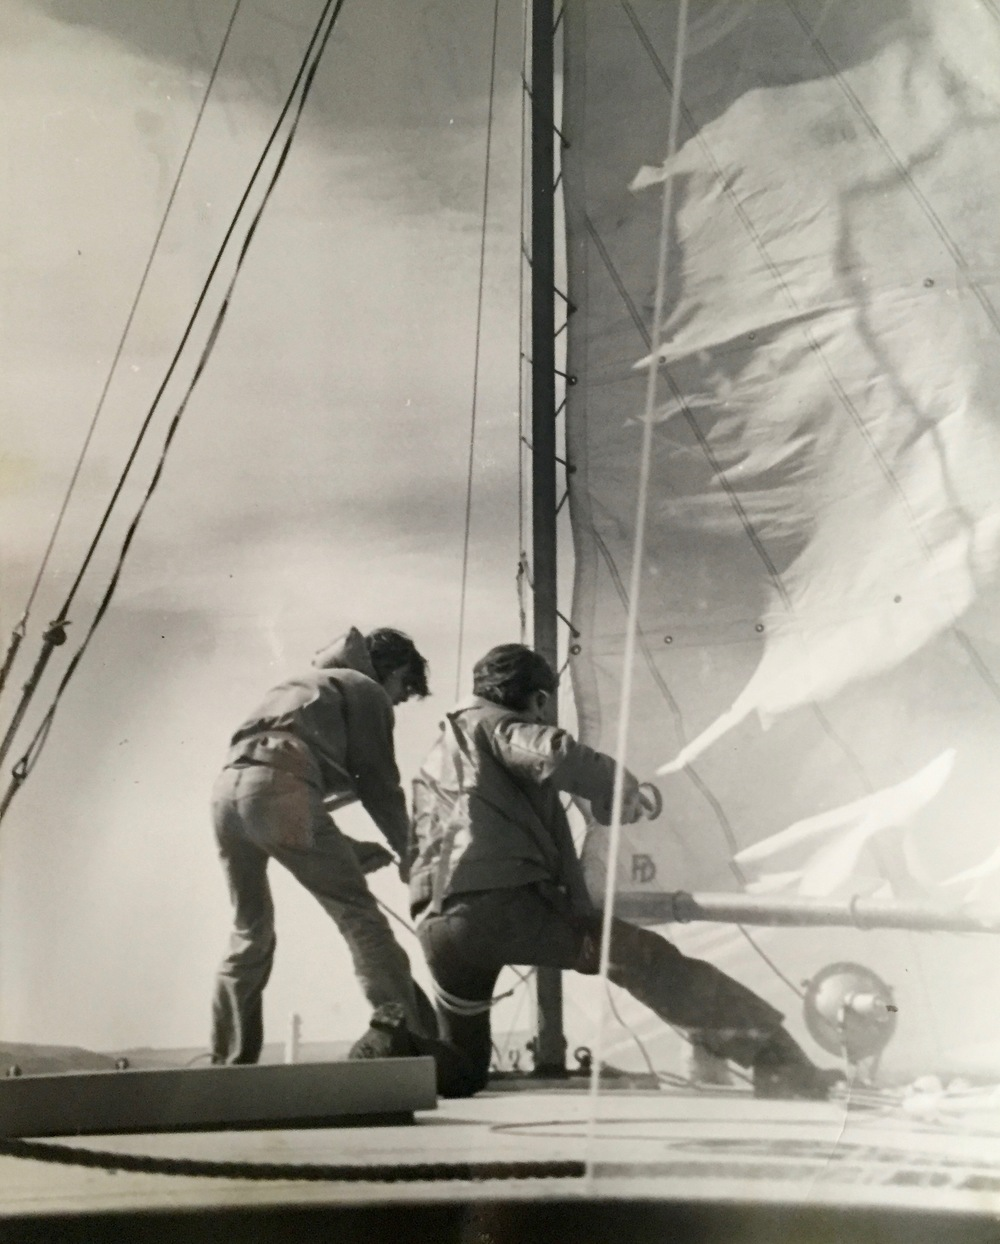 Hoisting sails required tw0 crew in stronger breeze